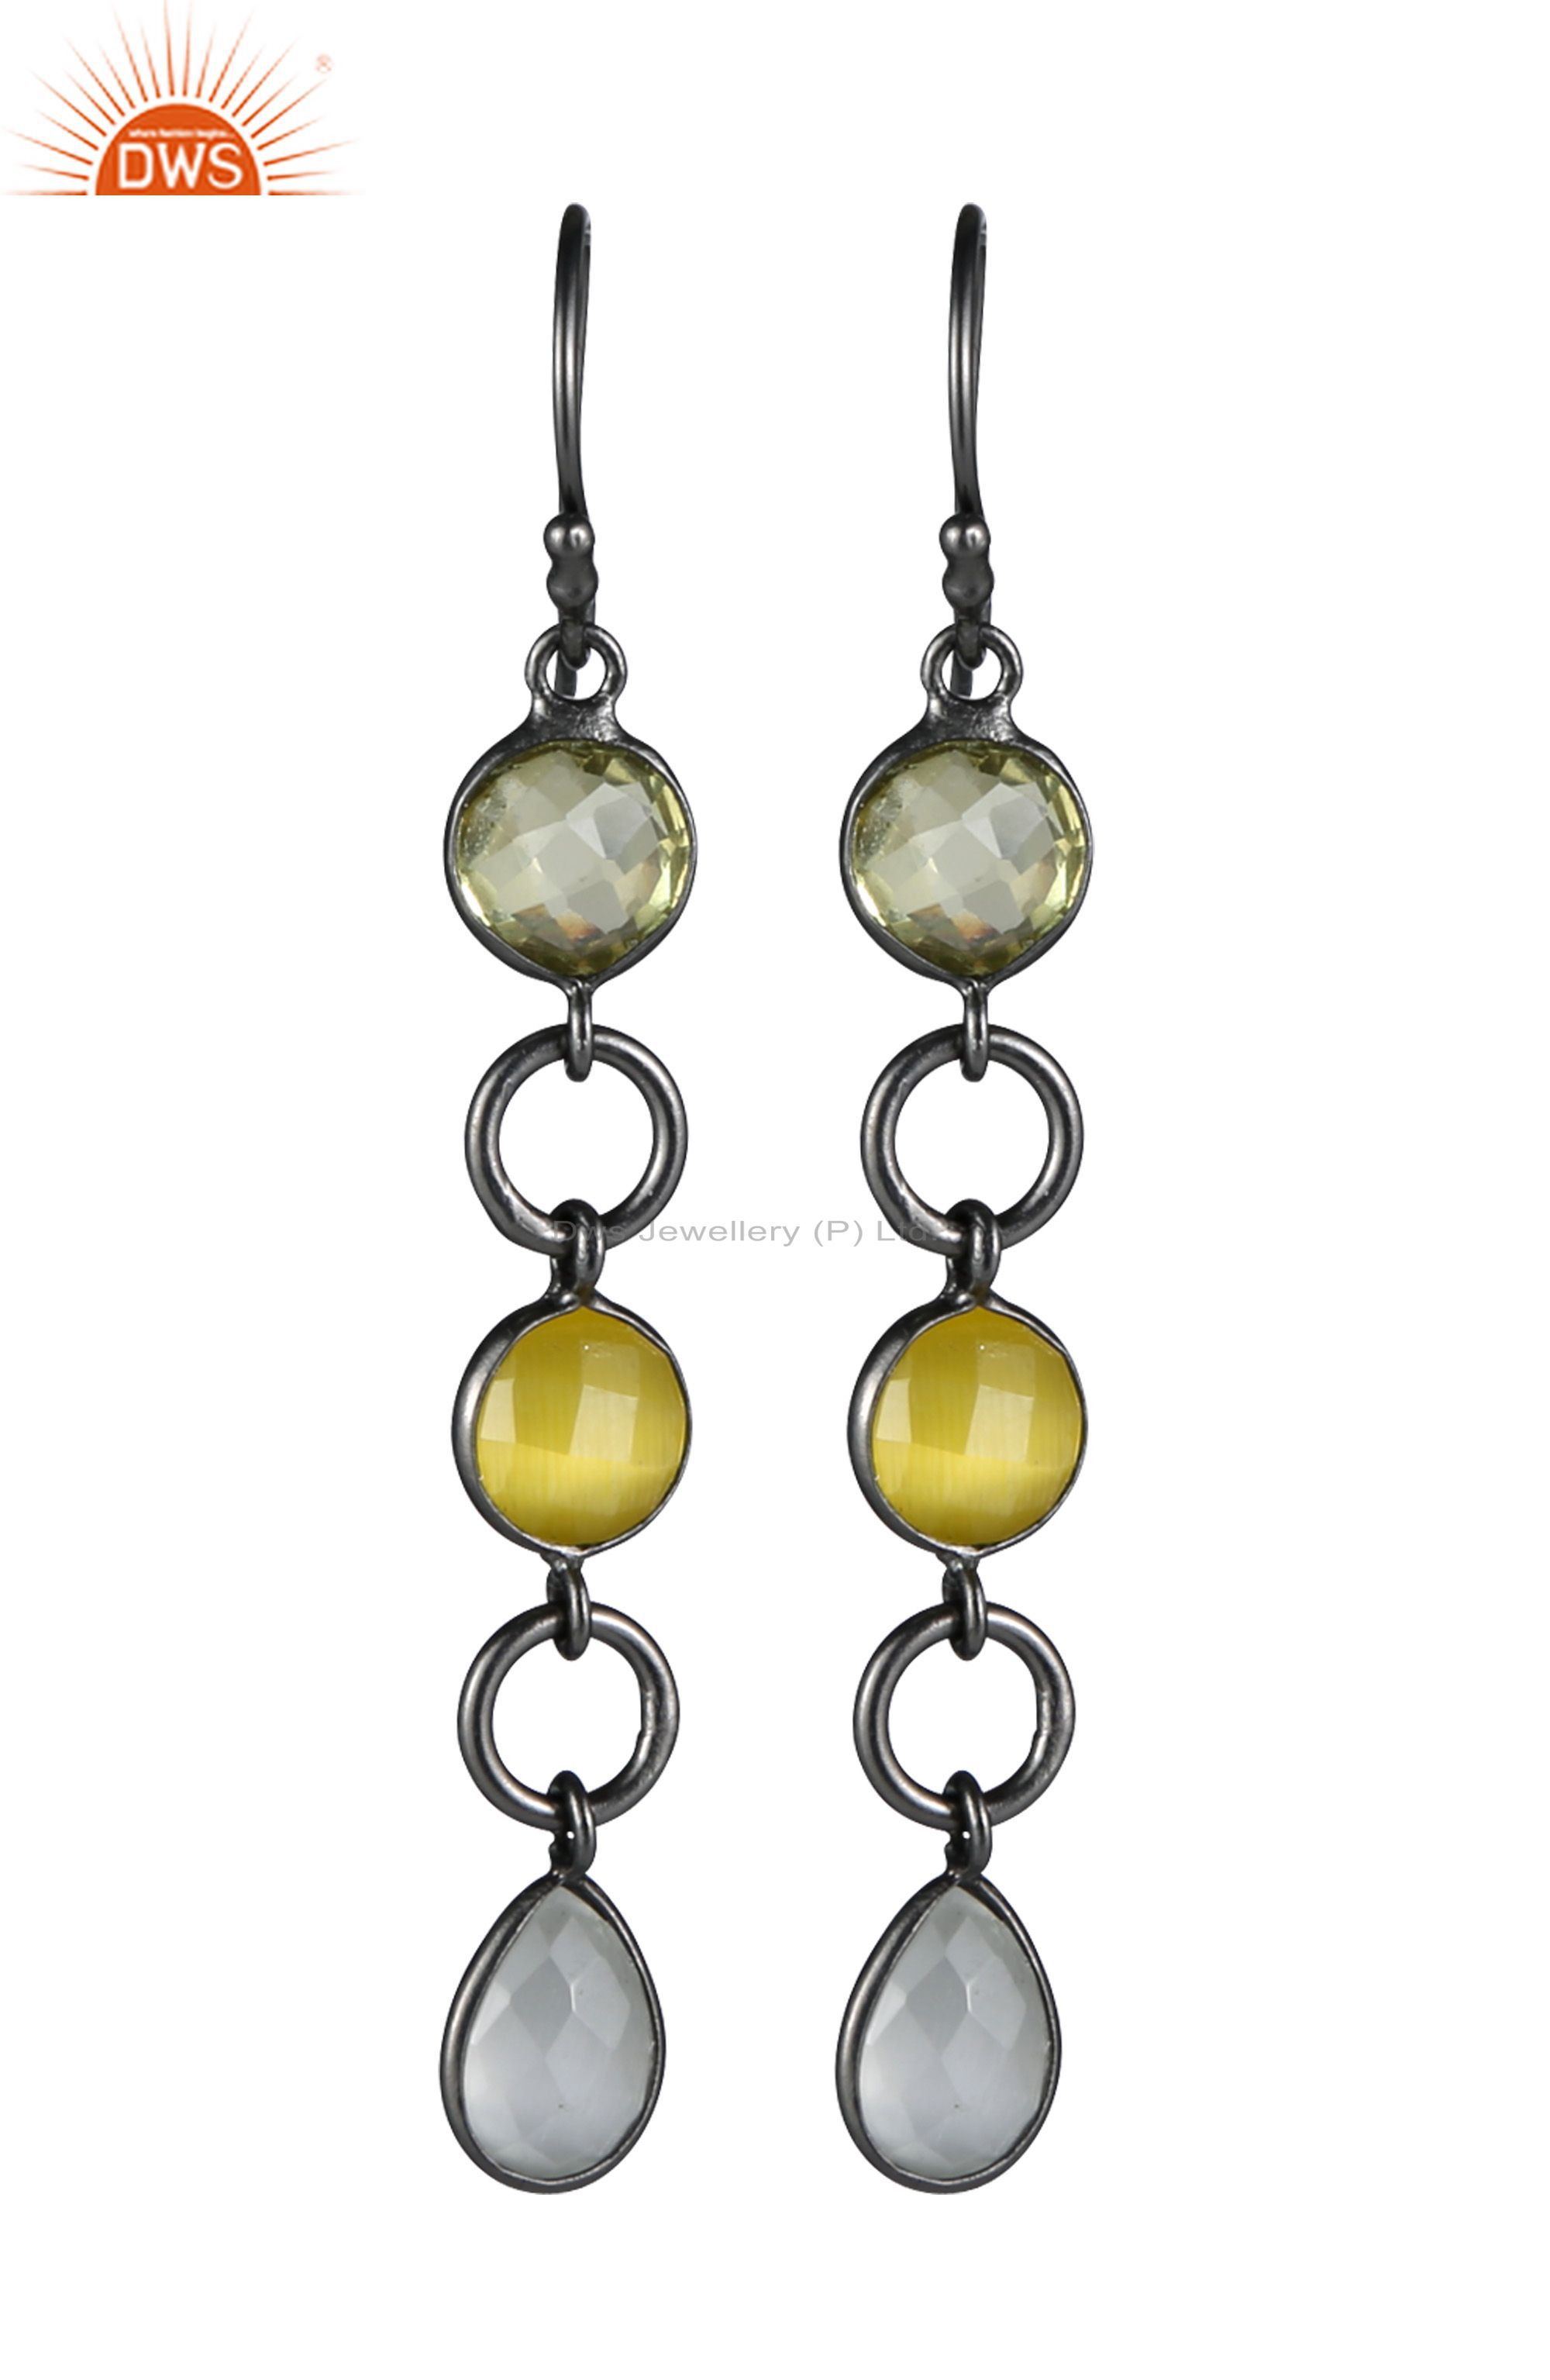 Oxidized Sterling Silver White Moonstone & Lemon Topaz Bezel Set Dangle Earrings